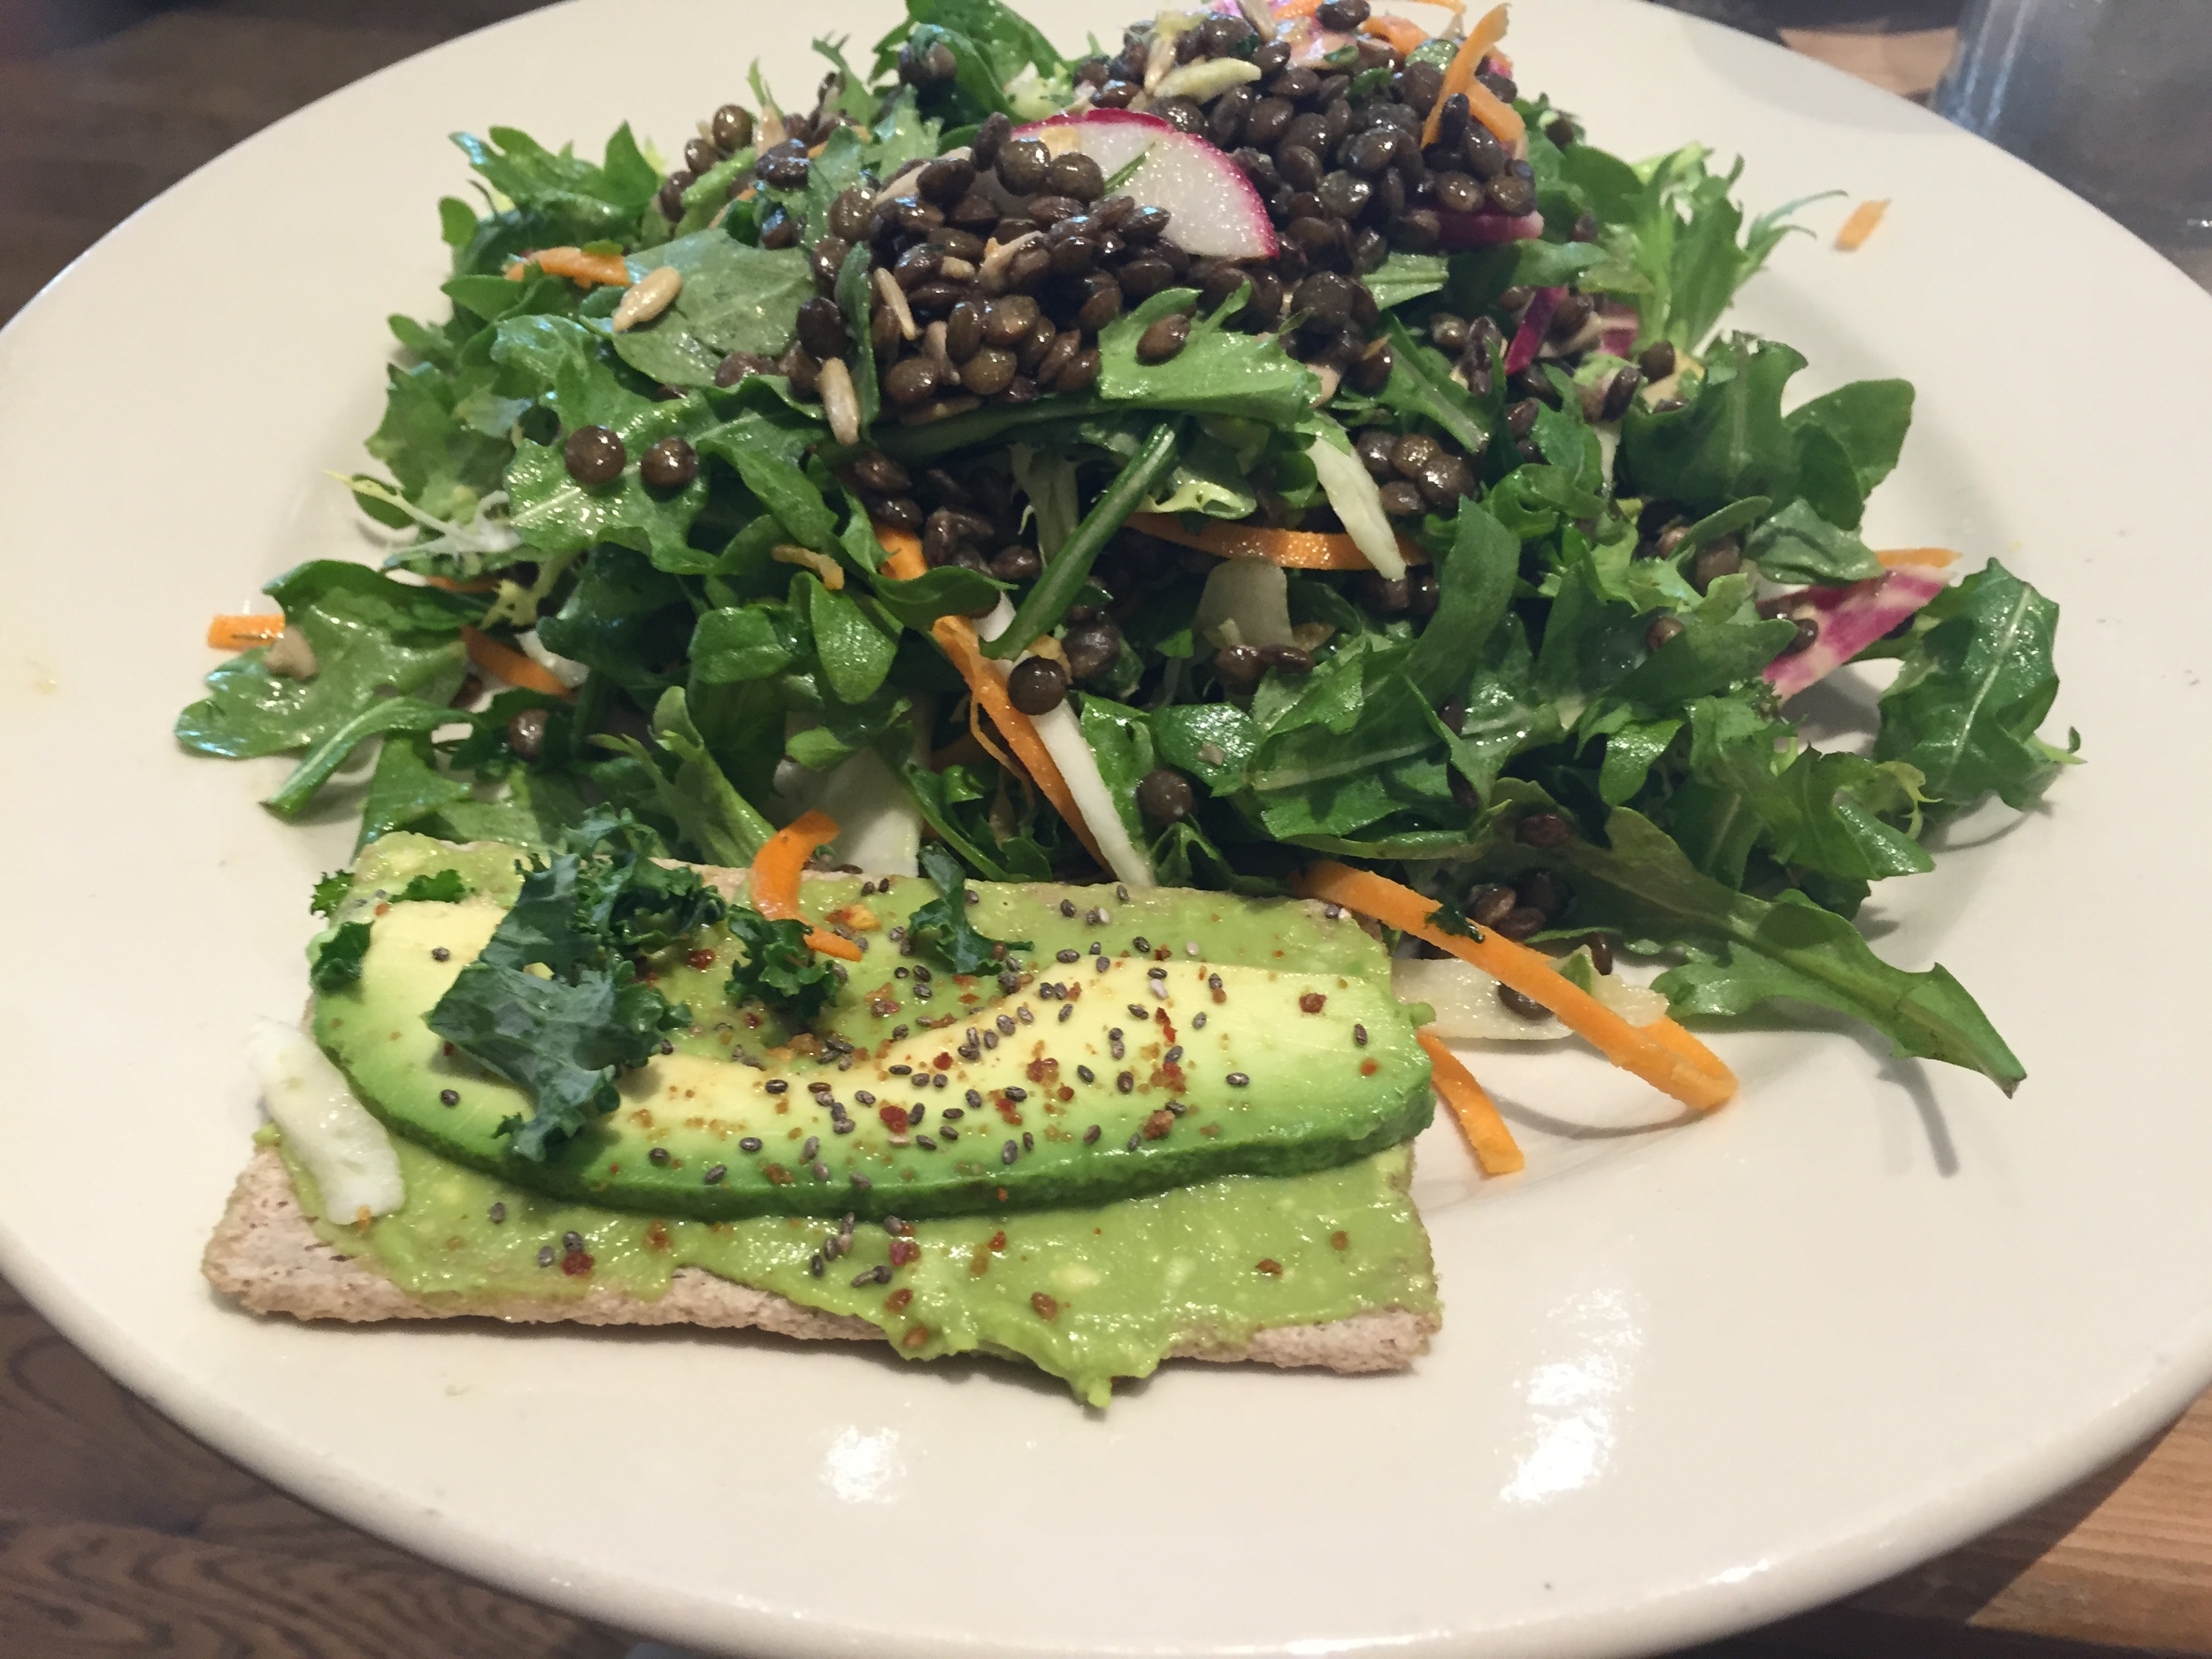 This gluten free avocado toast is the bomb.  It comes with about five pieces on these buckwheat crackers that are actually pretty decent.  I have one of them paired here with the Lentil and Avocado salad.  This is my favorite thing, and I try to get it every time.  I would 100% recommend it.